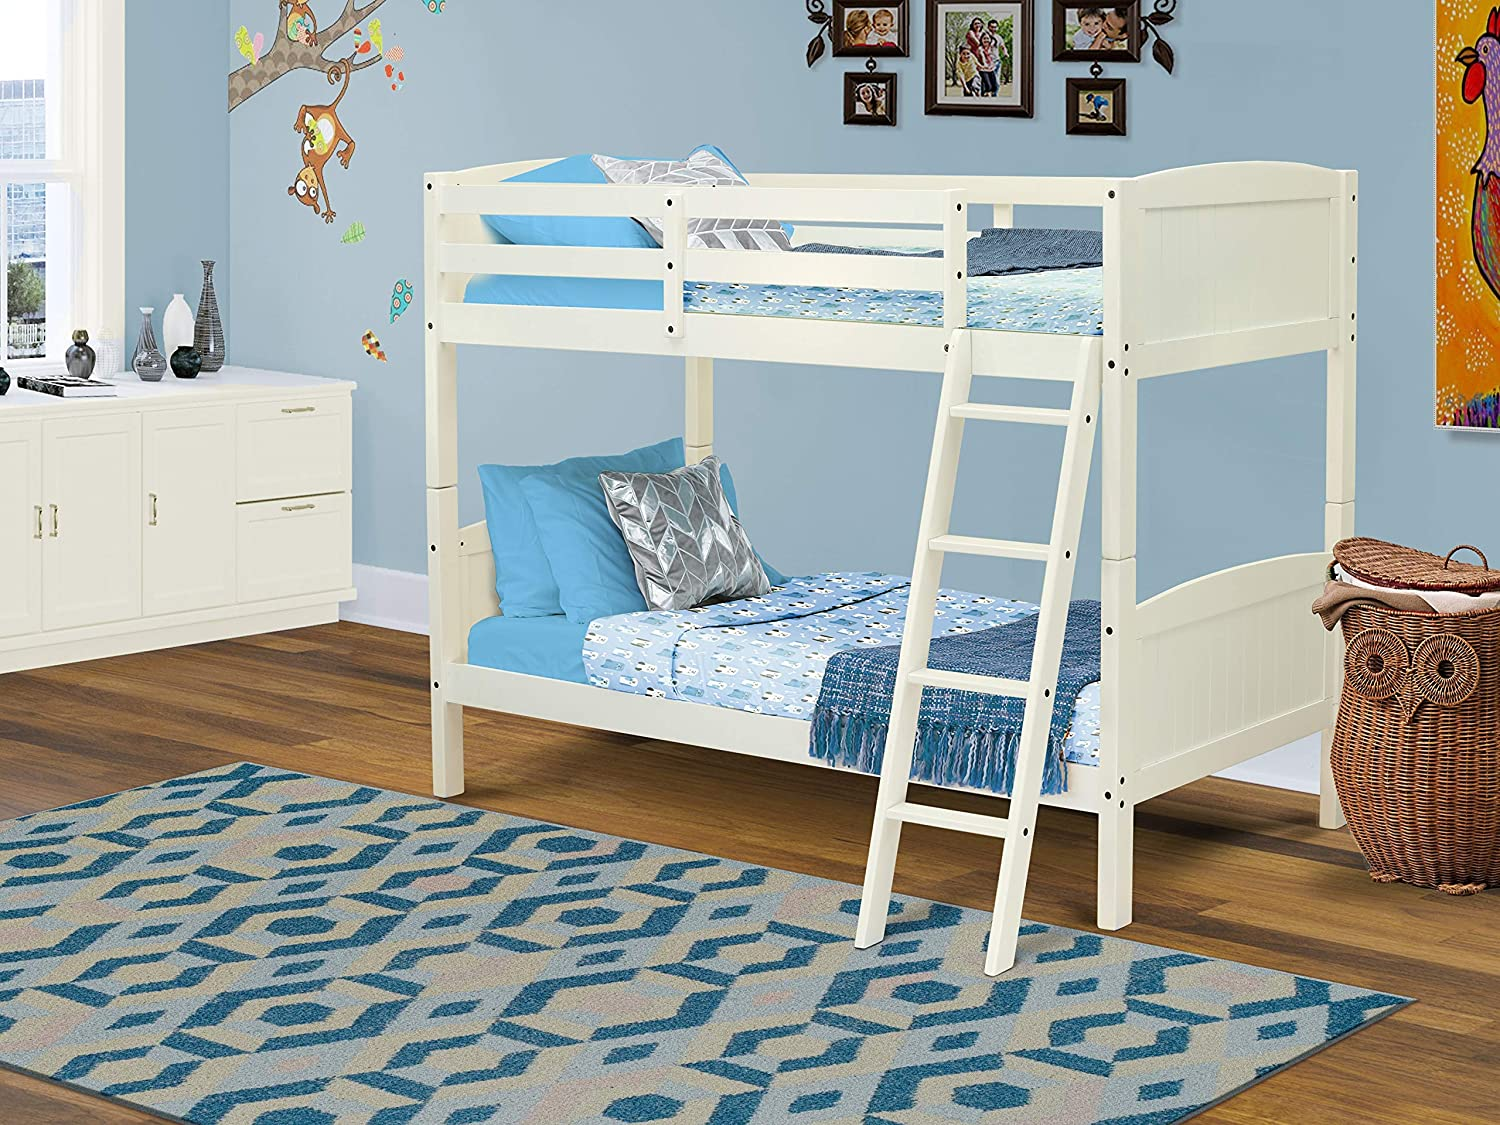 East West Furniture AYB-05-T Bunk Beds, Linen White